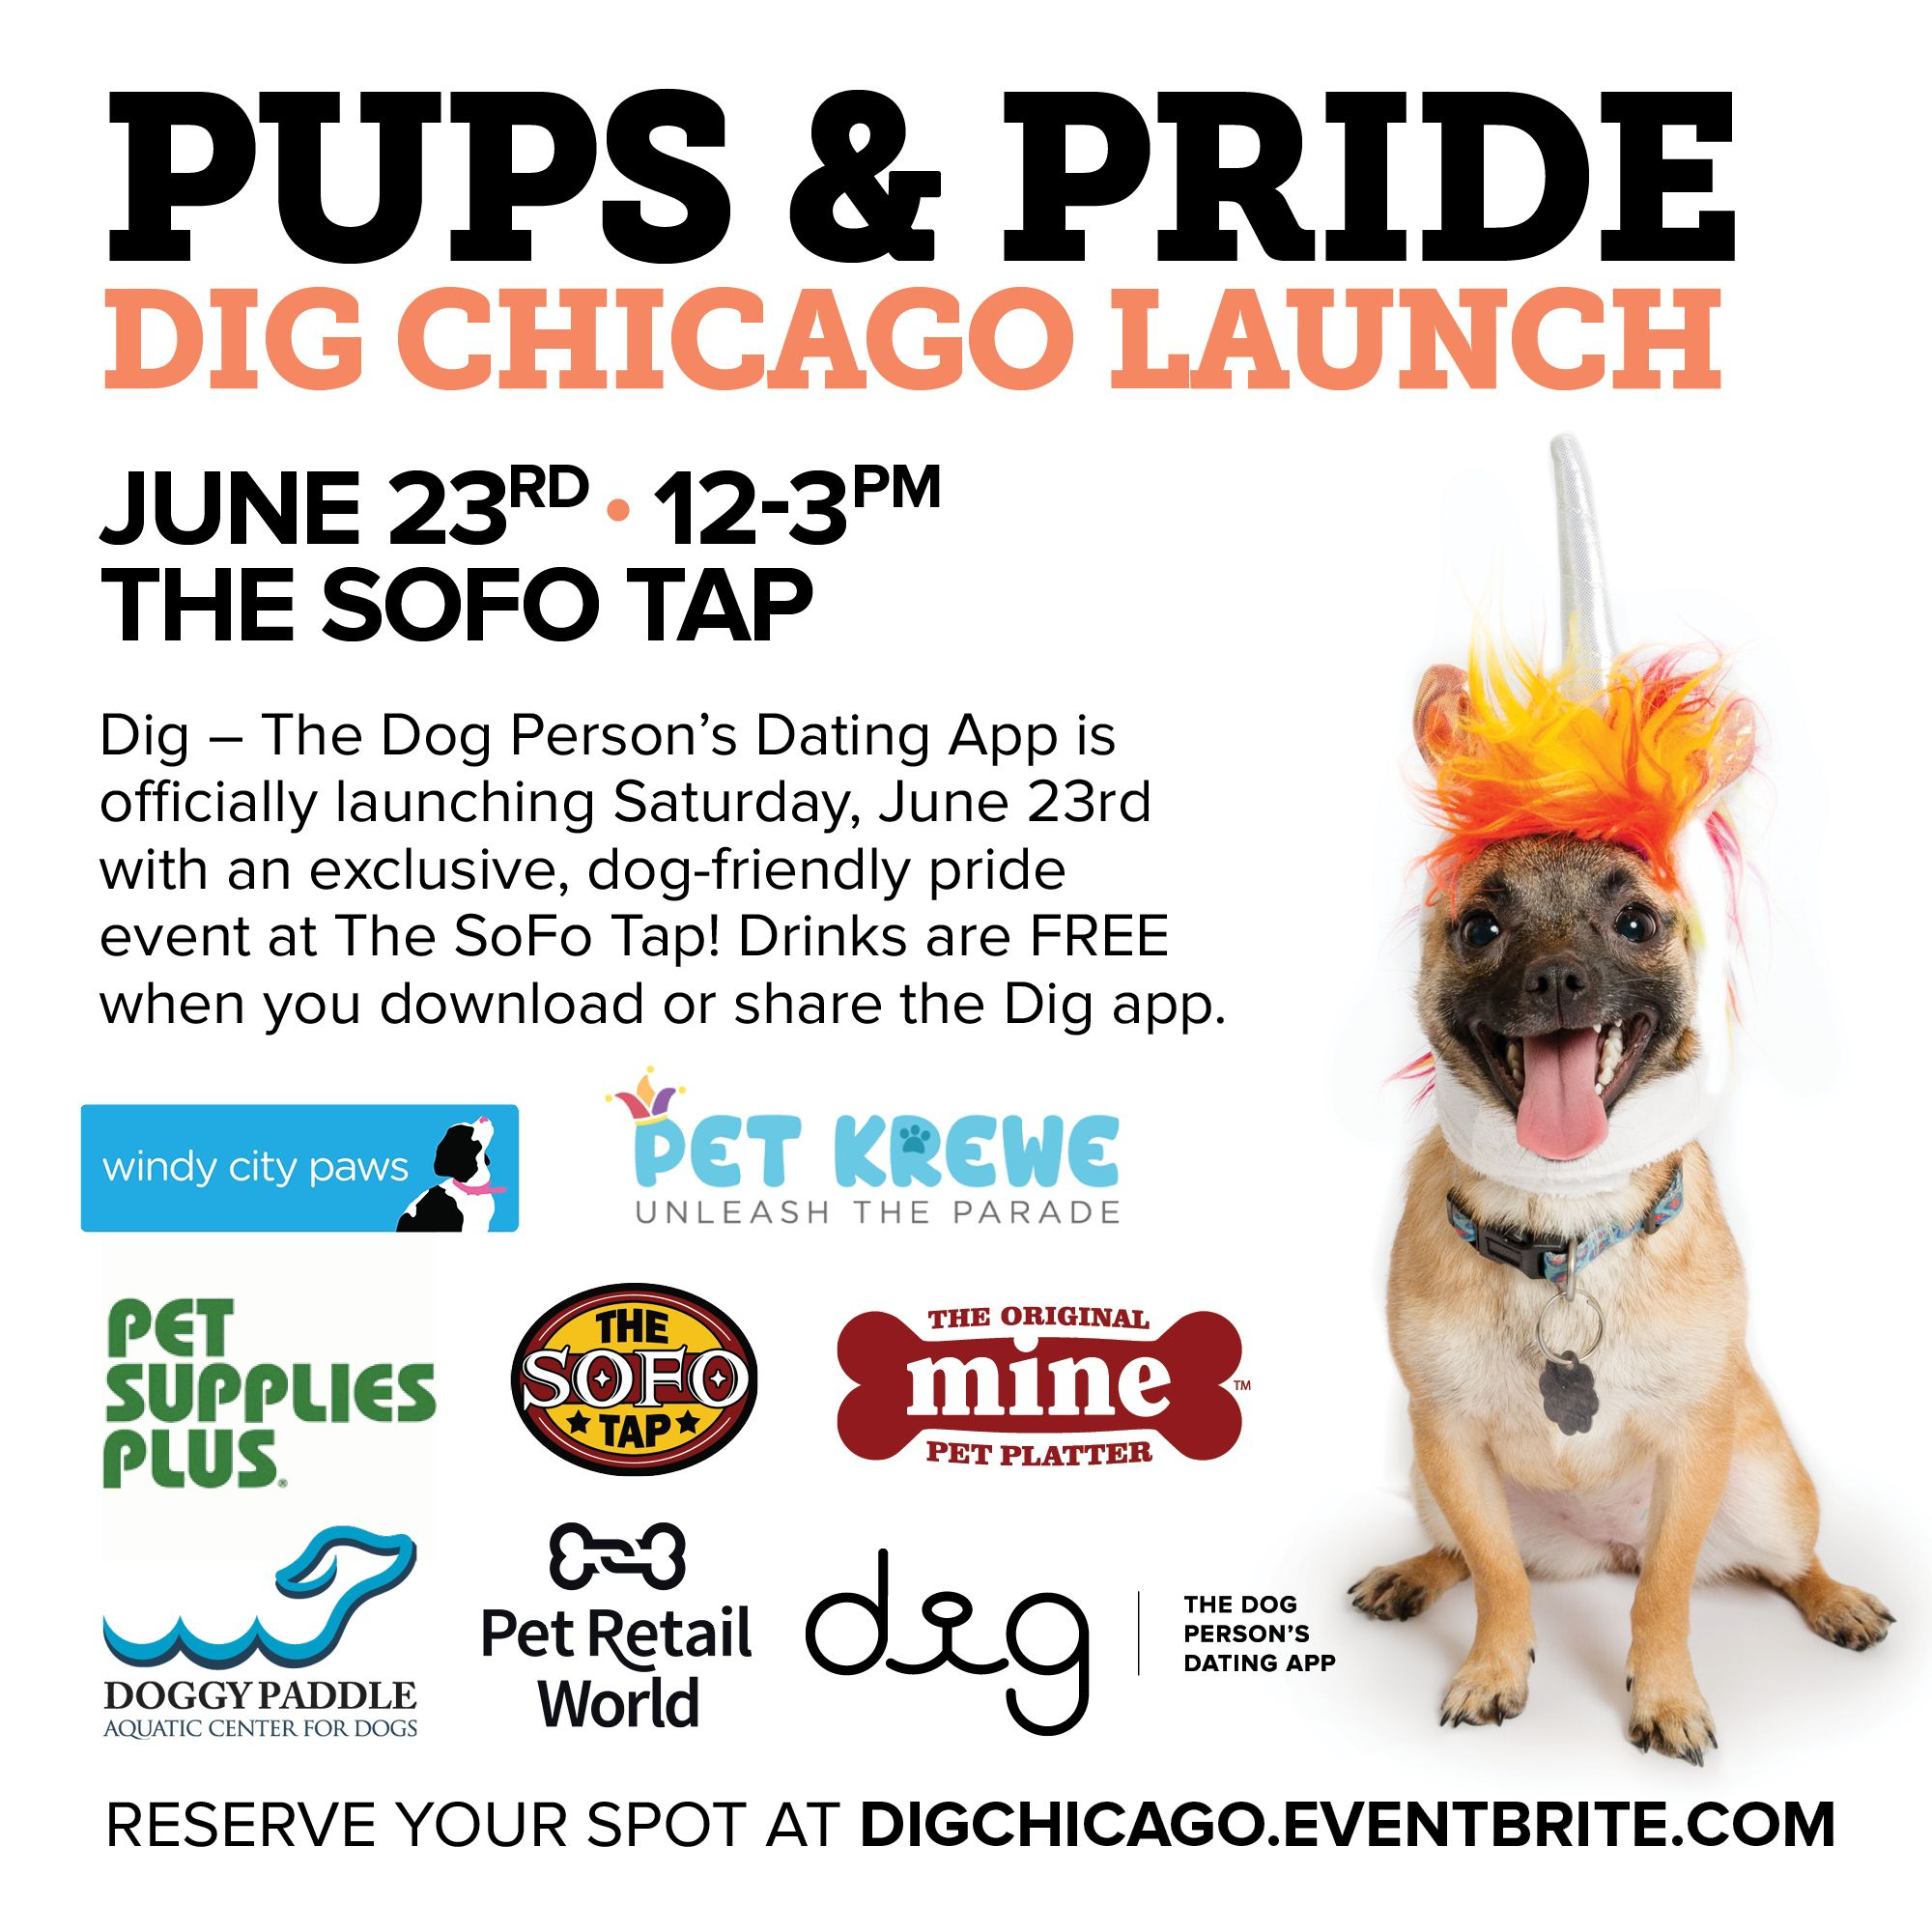 Free dog friendly event in chicago on June 23! Free beer